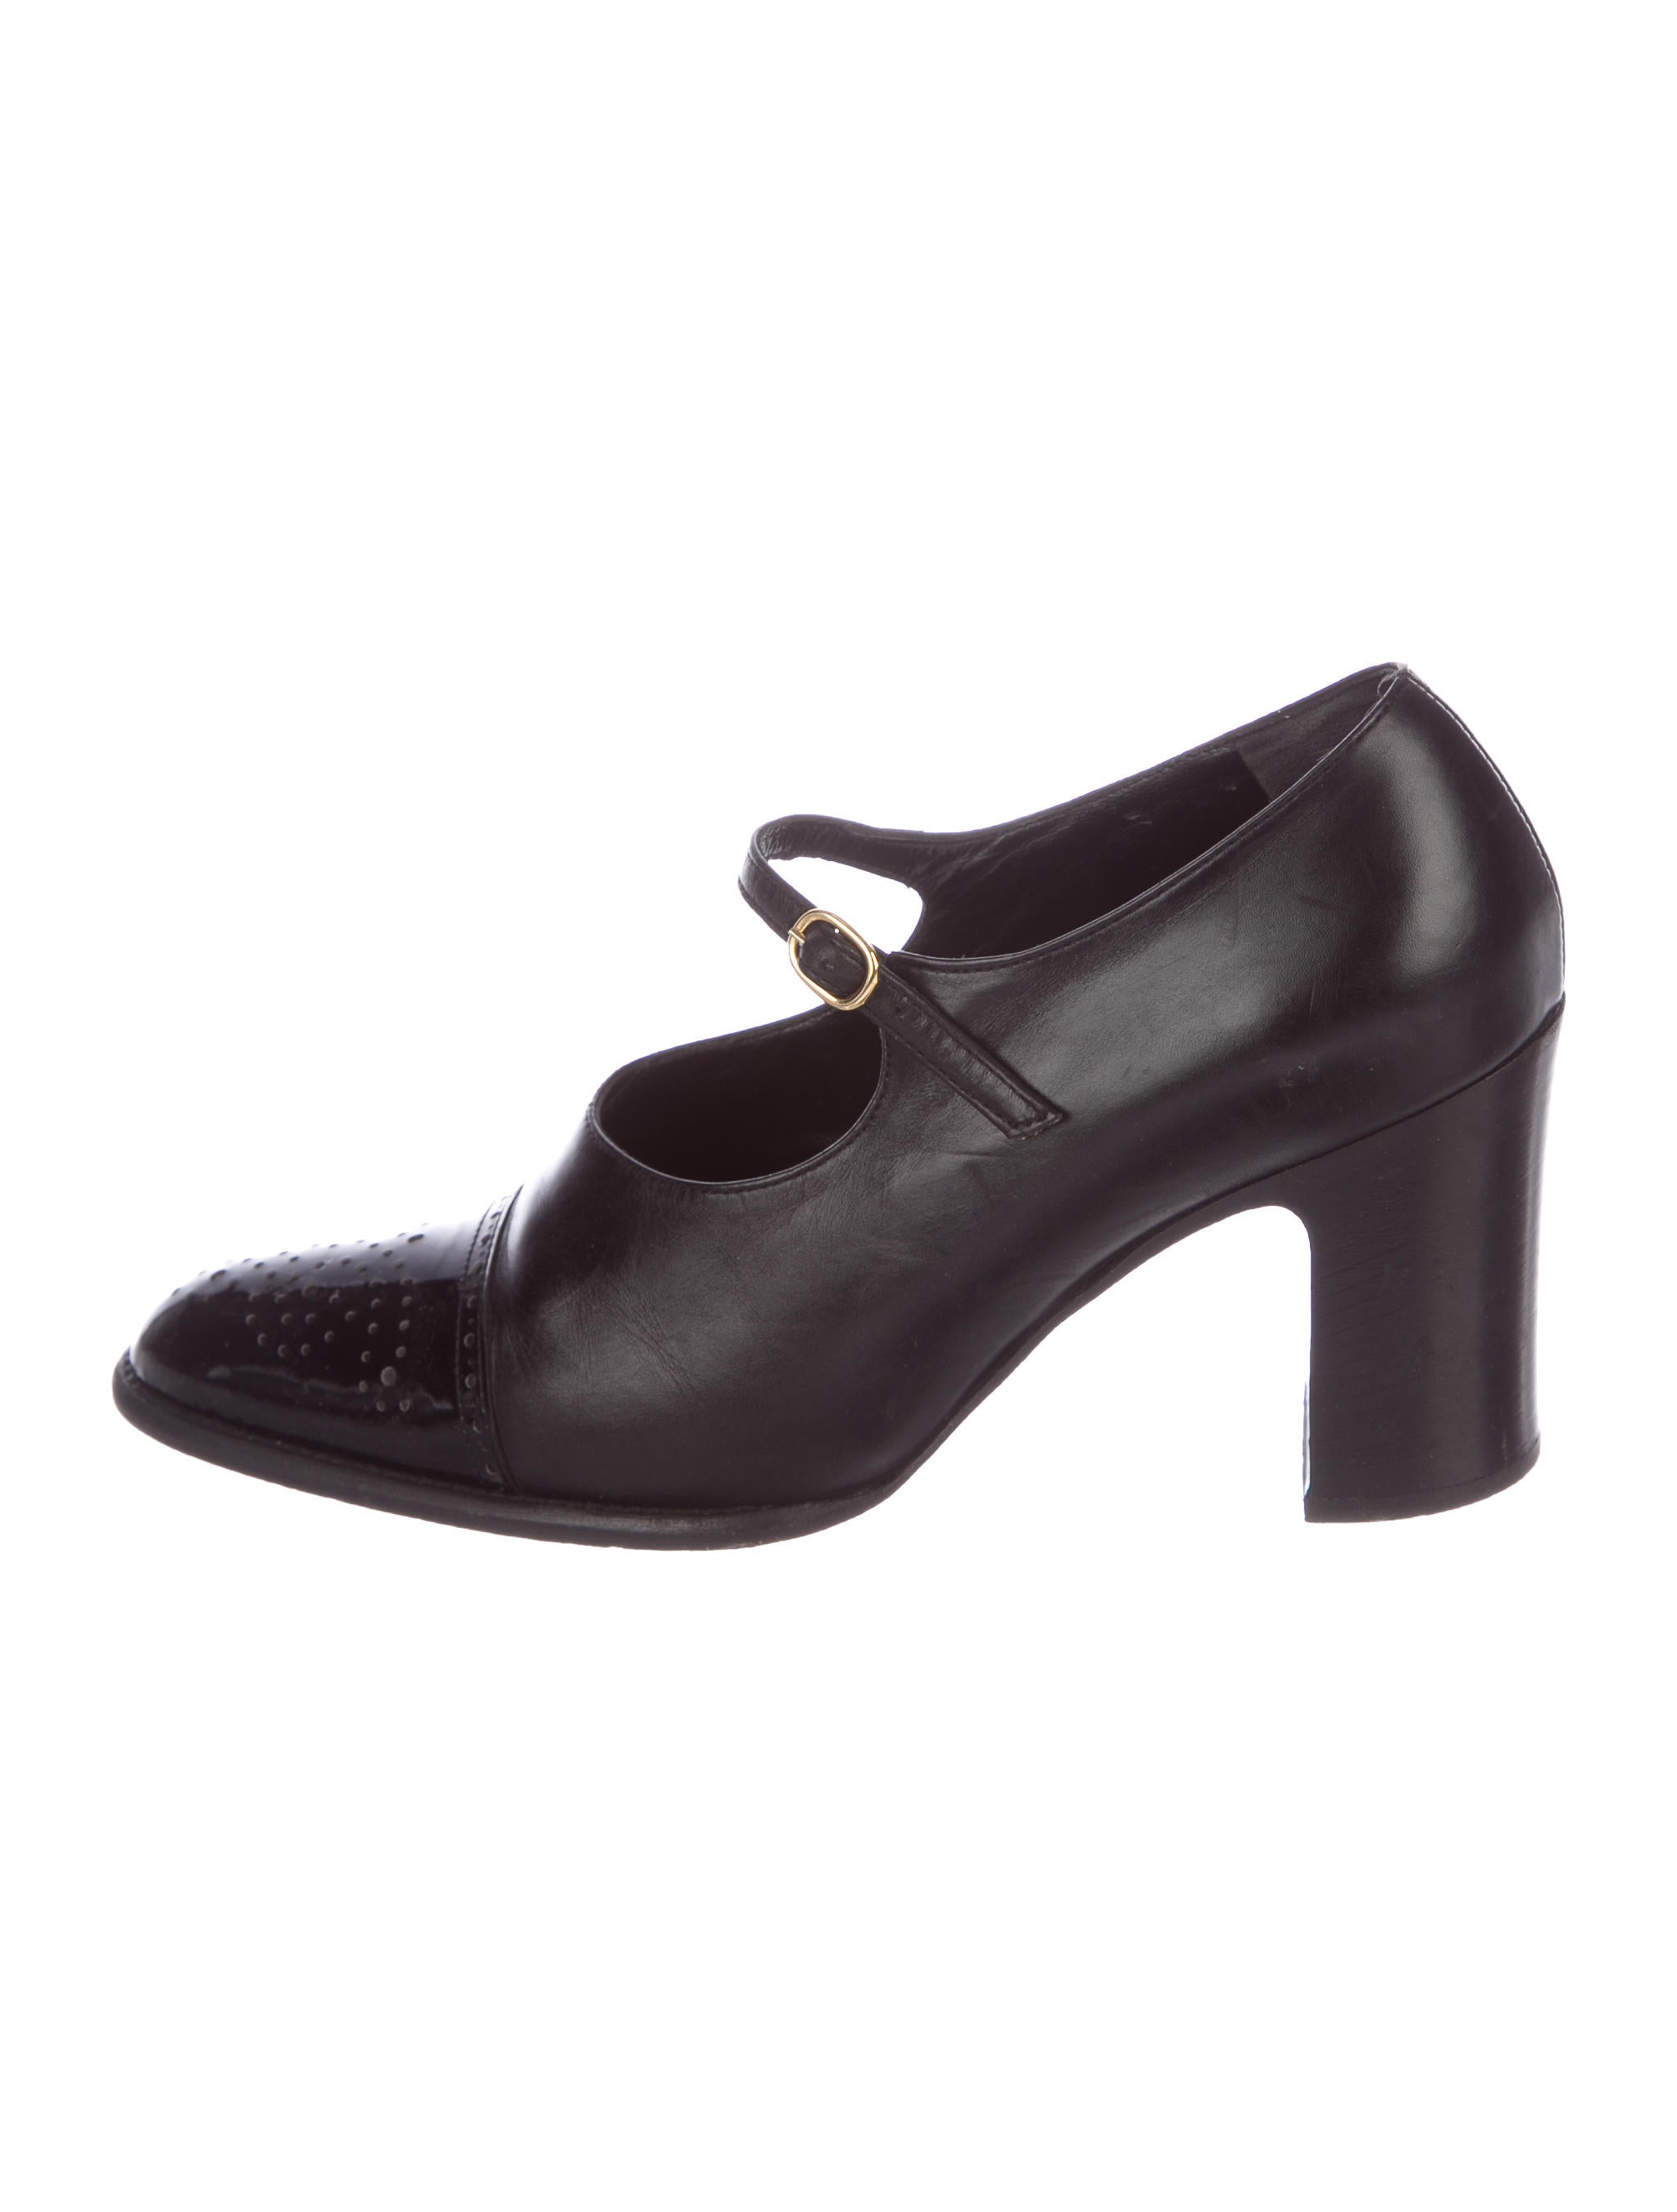 footlocker pictures cheap online free shipping visa payment Robert Clergerie Leather Mary Jane Pumps cheap sale wholesale price 14EcUsOid